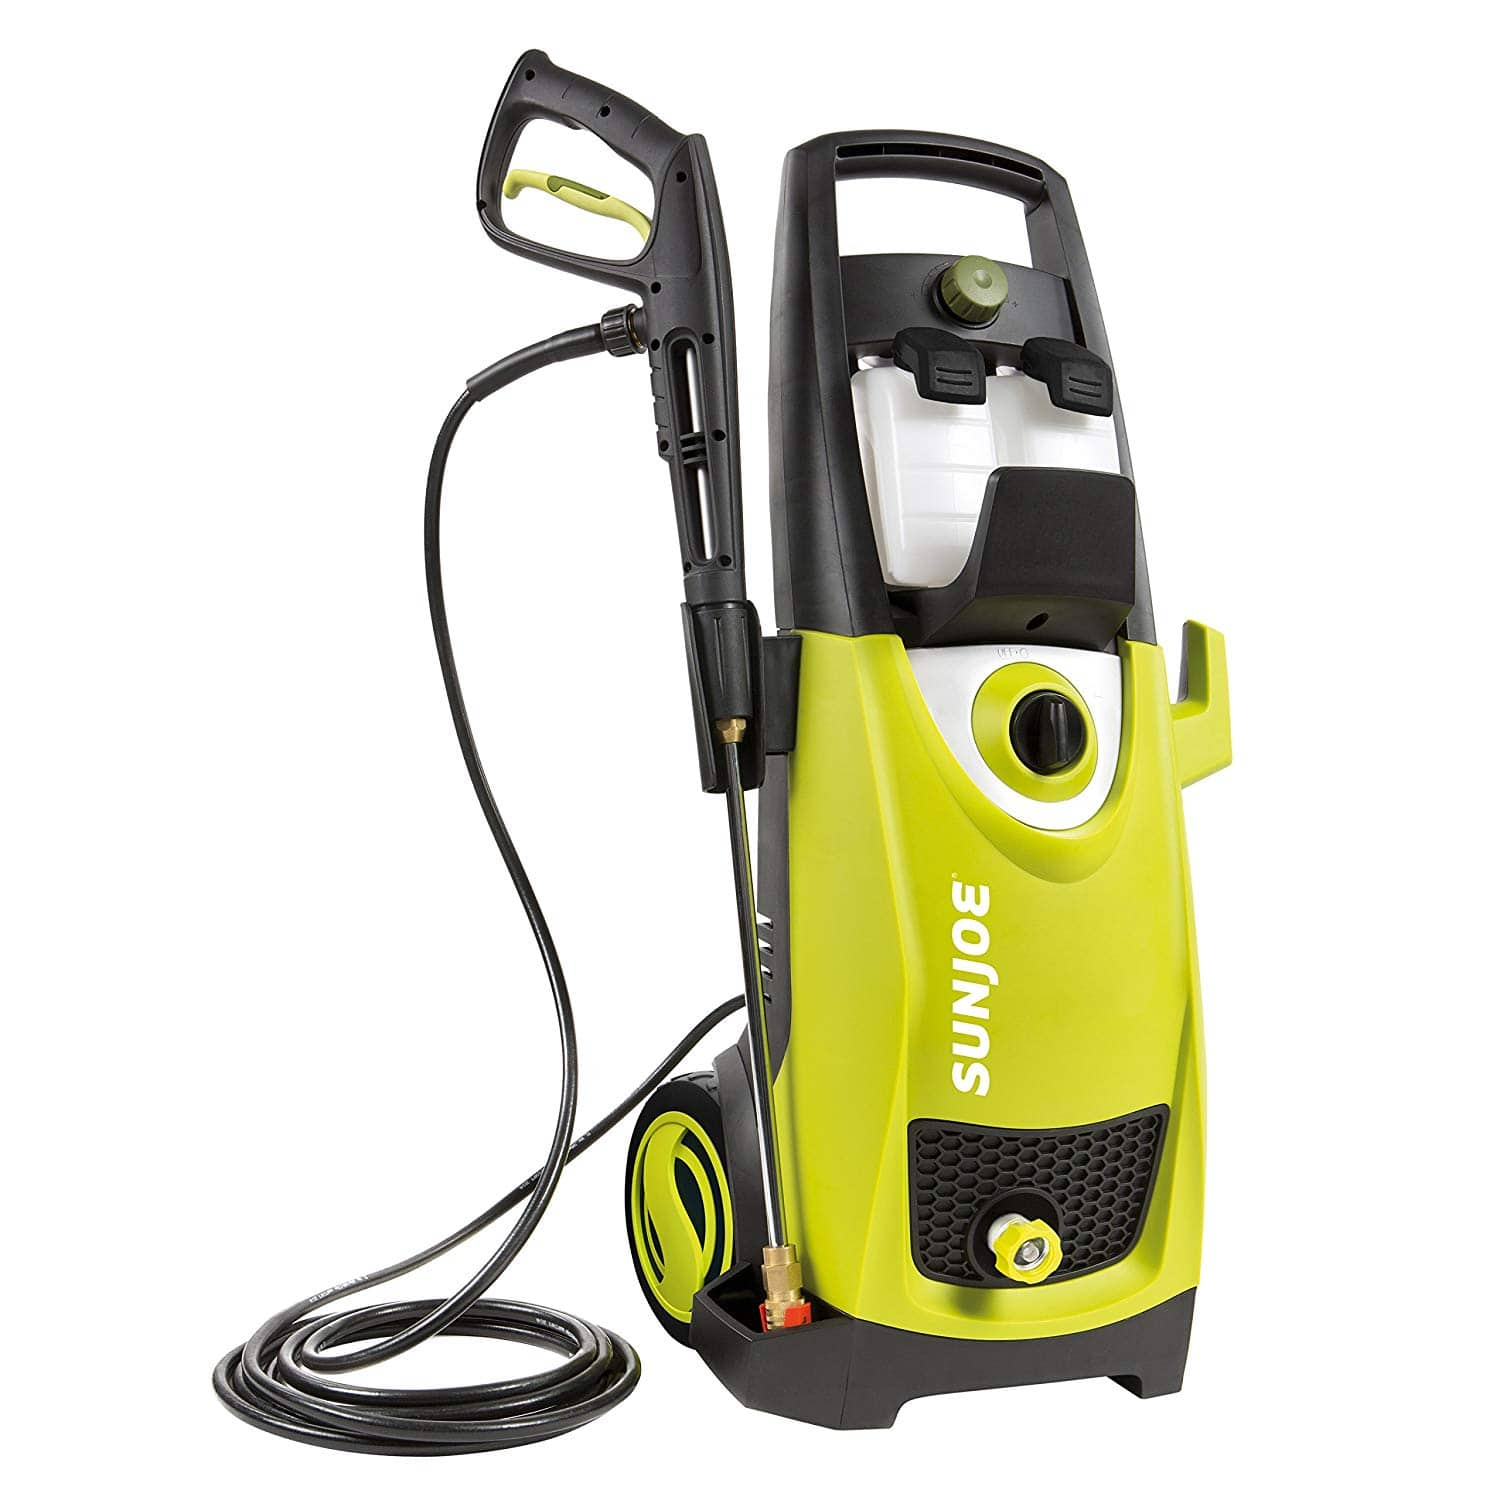 Sun Joe Pressure Joe SPX3000 2,030 psi 1.76 GPM 14.5 Amp Electric Pressure Washer $109 @ Home Depot